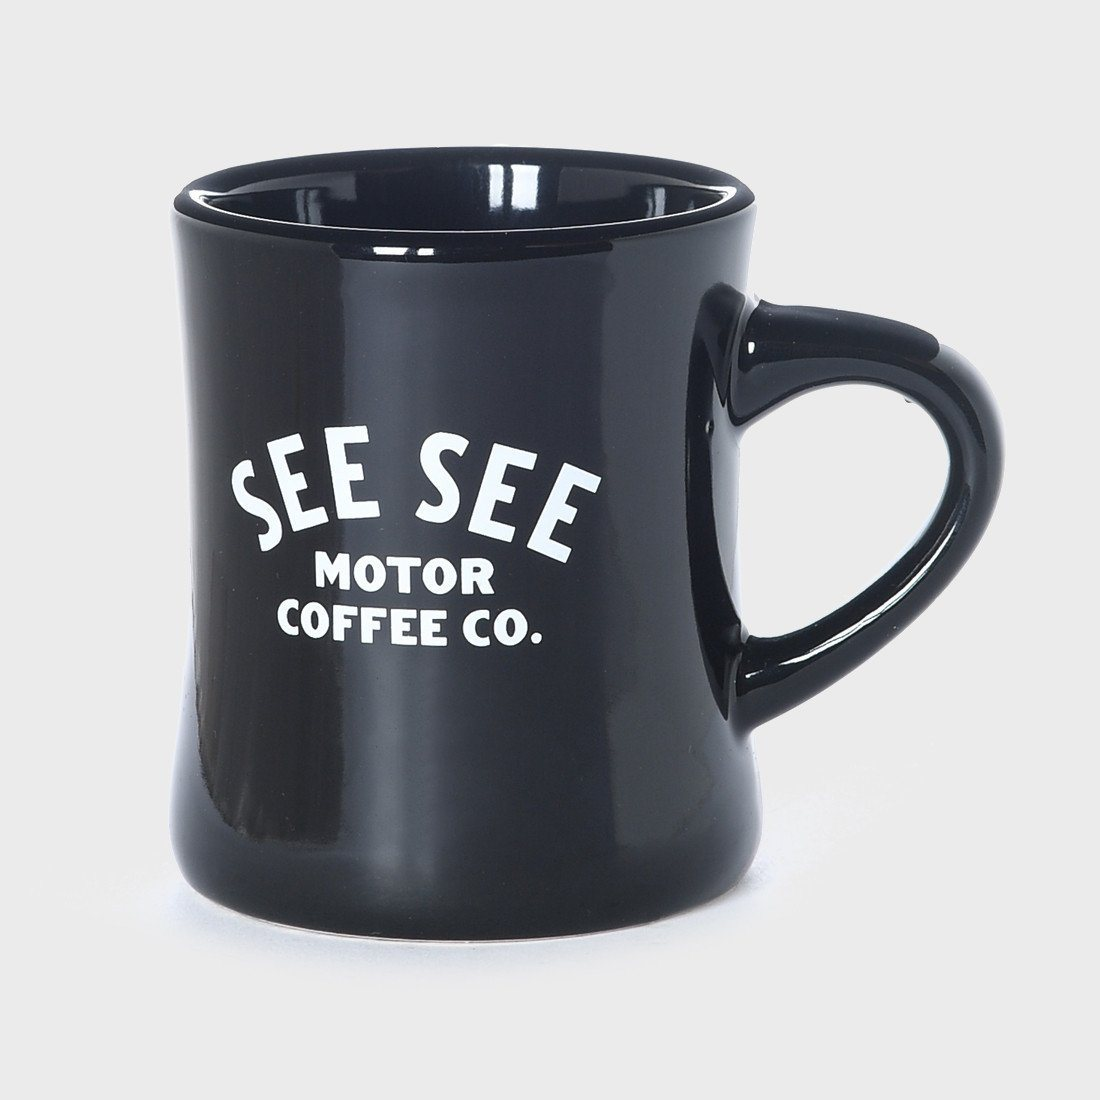 See See Motorcycles Motor Coffee Diner Mug Black